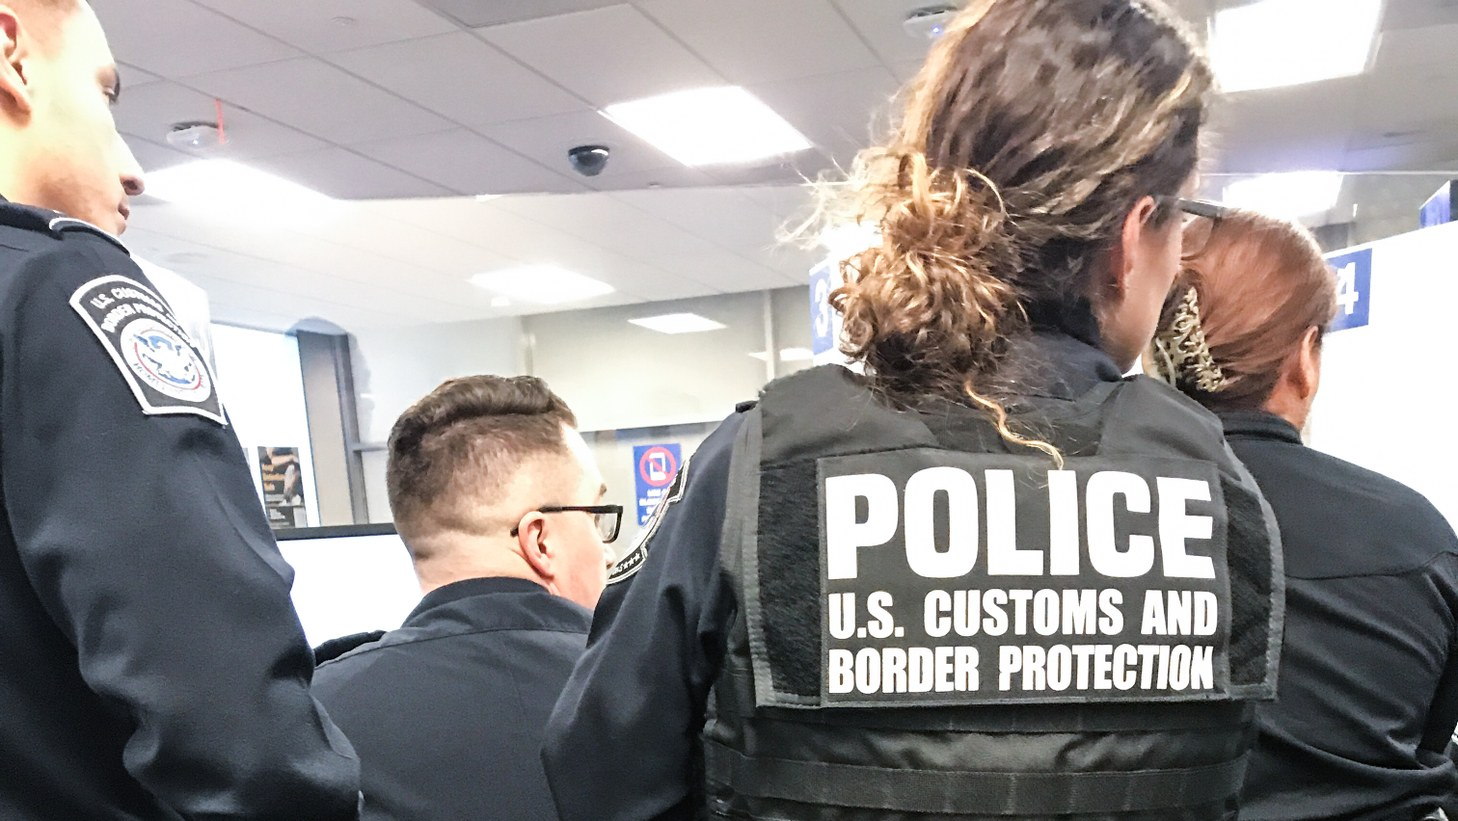 Members of the US Customs and Border Protection's Admissibility Review Unit at LAX huddle around a computer screen as they review a traveler's documentation.